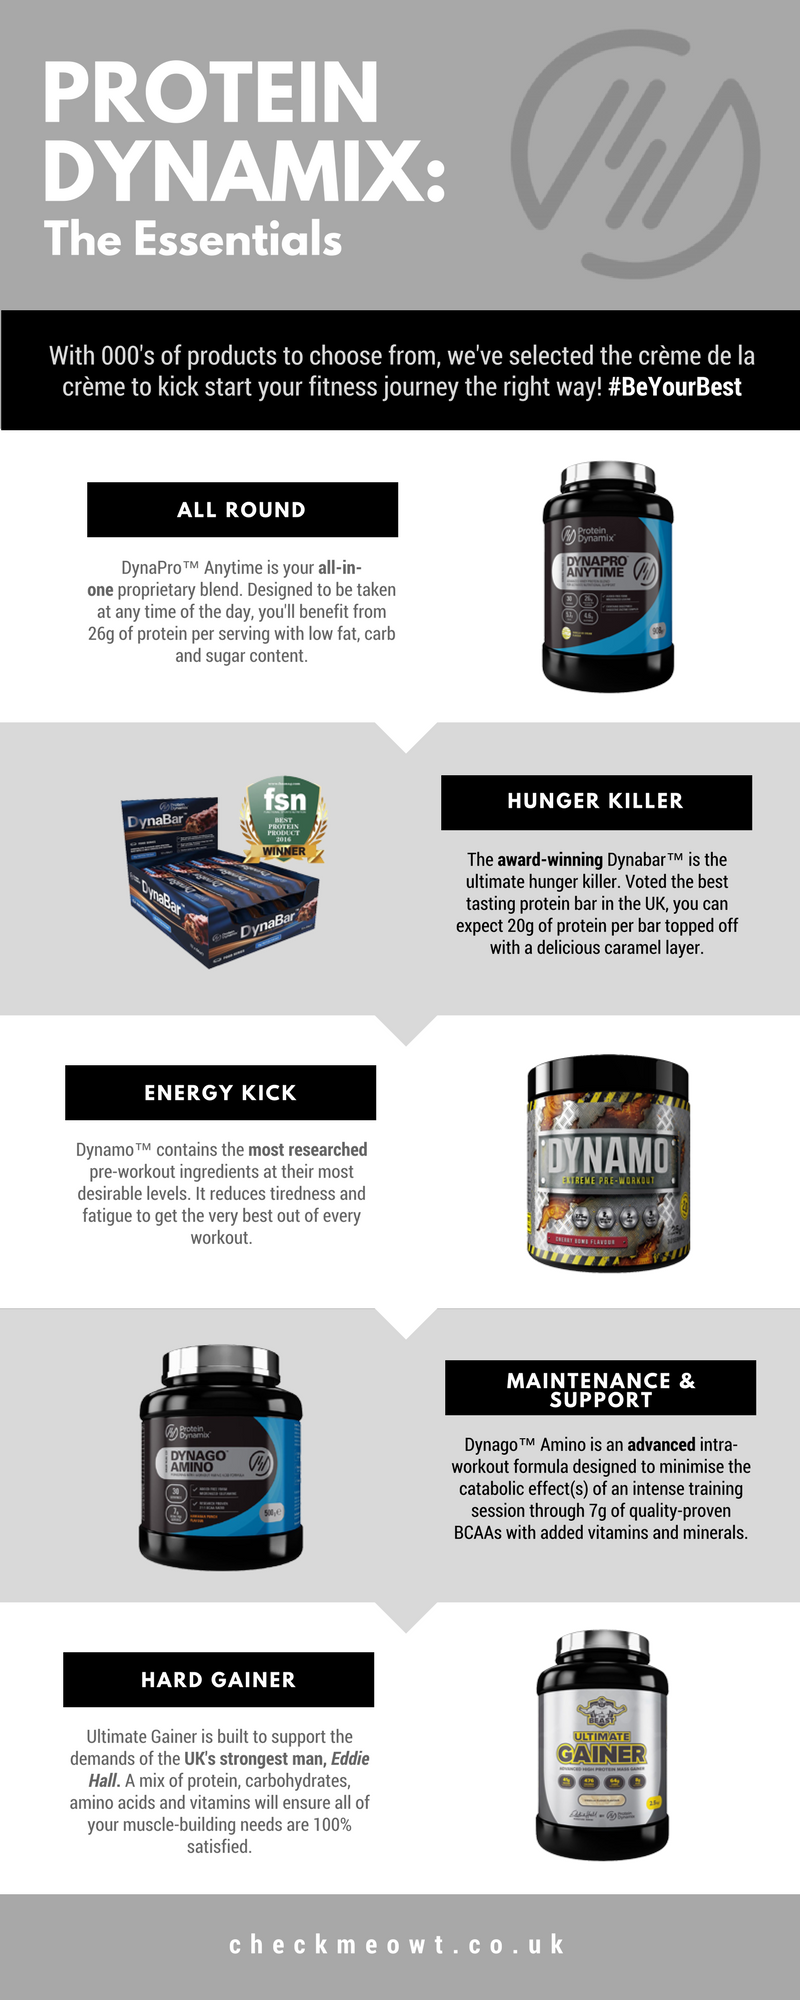 CheckMeowt | Protein Dynamix Essentials Infographic